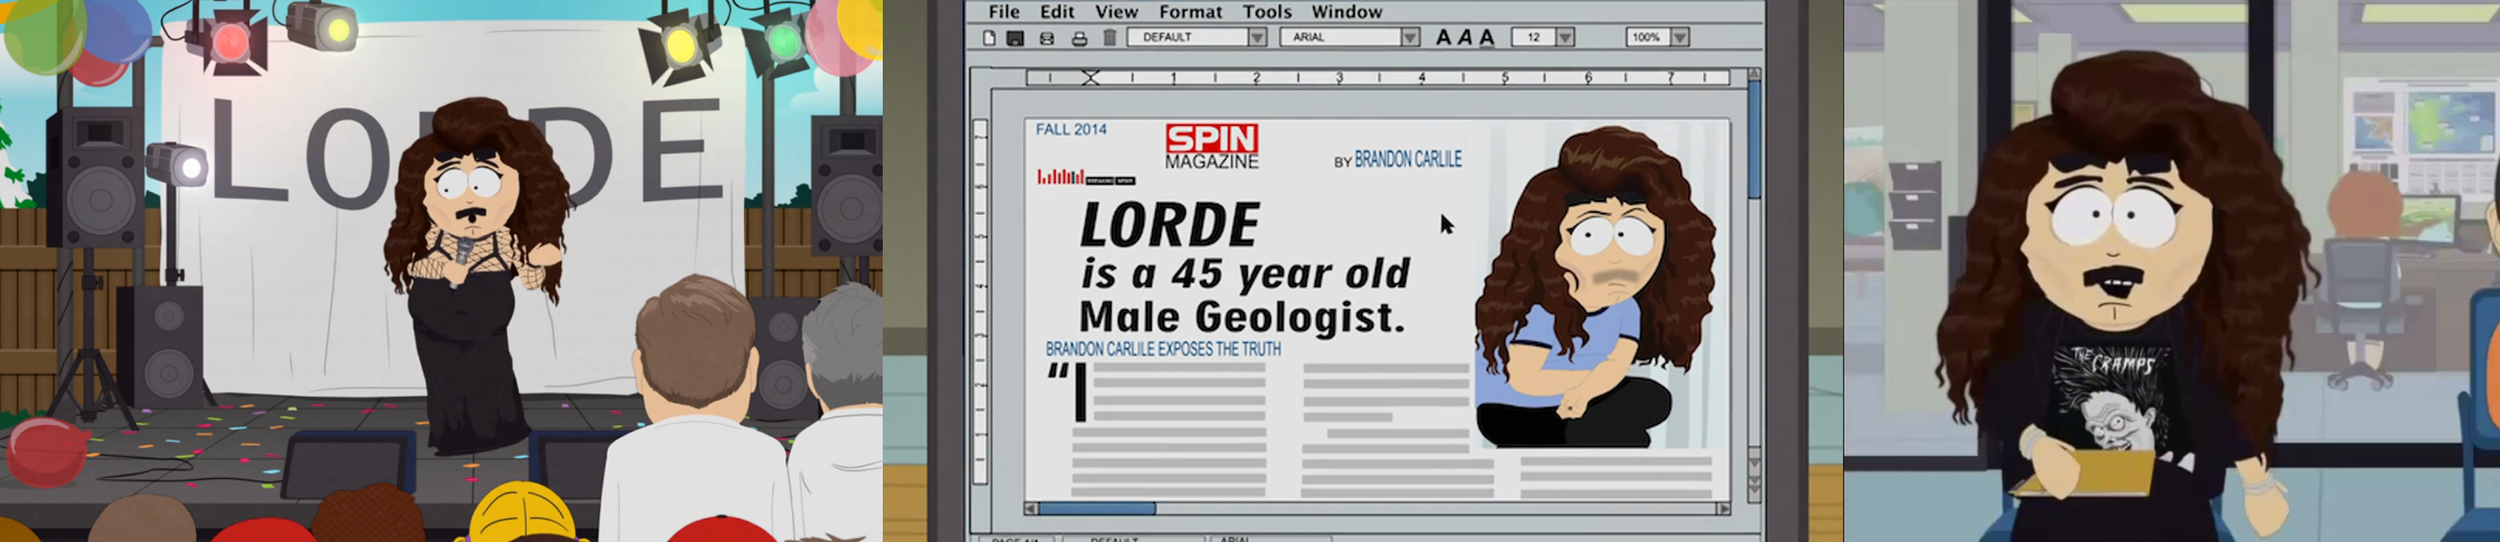 Lorde on South Park